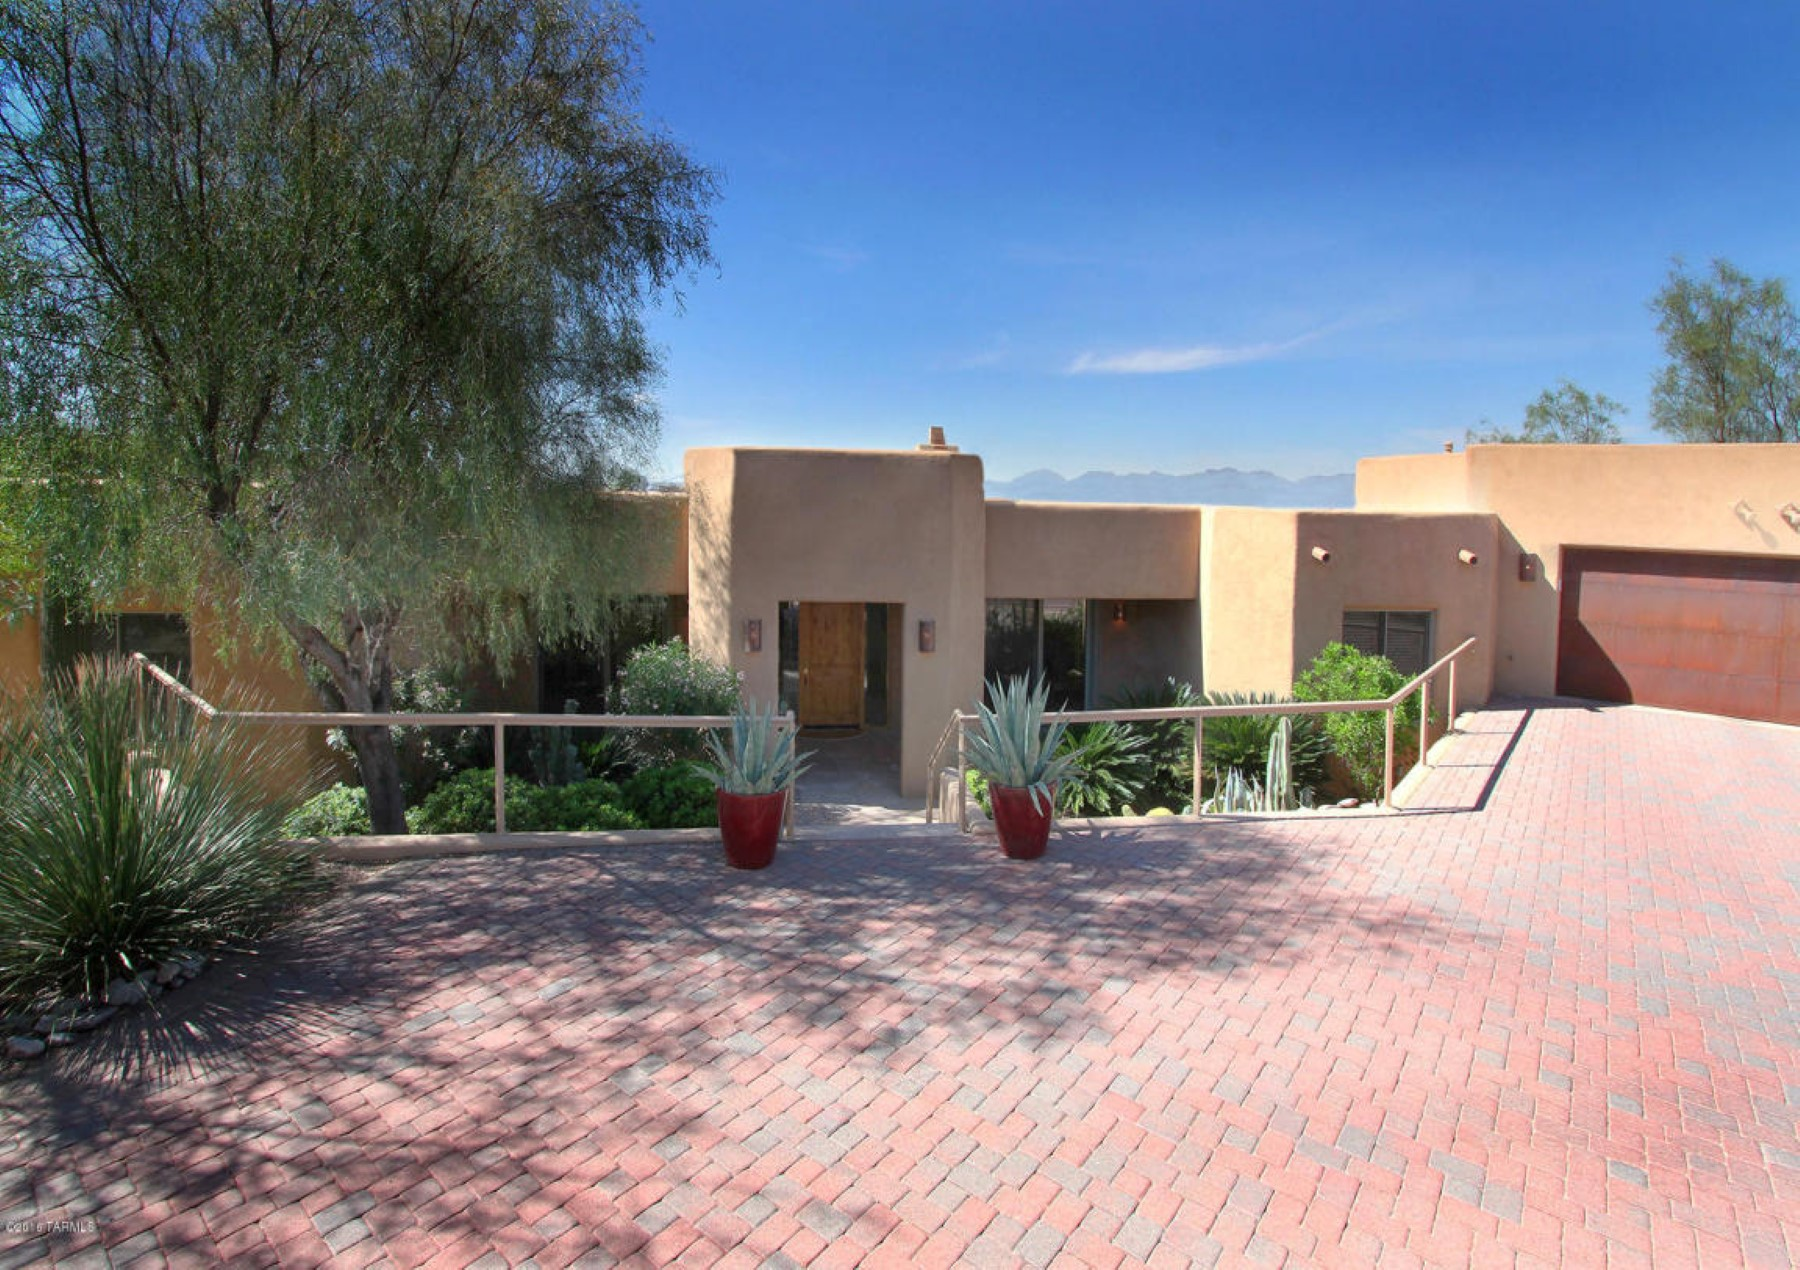 Single Family Home for Sale at Fully furnished contemporary home 1608 E Desert Garden Drive Tucson, Arizona, 85718 United States